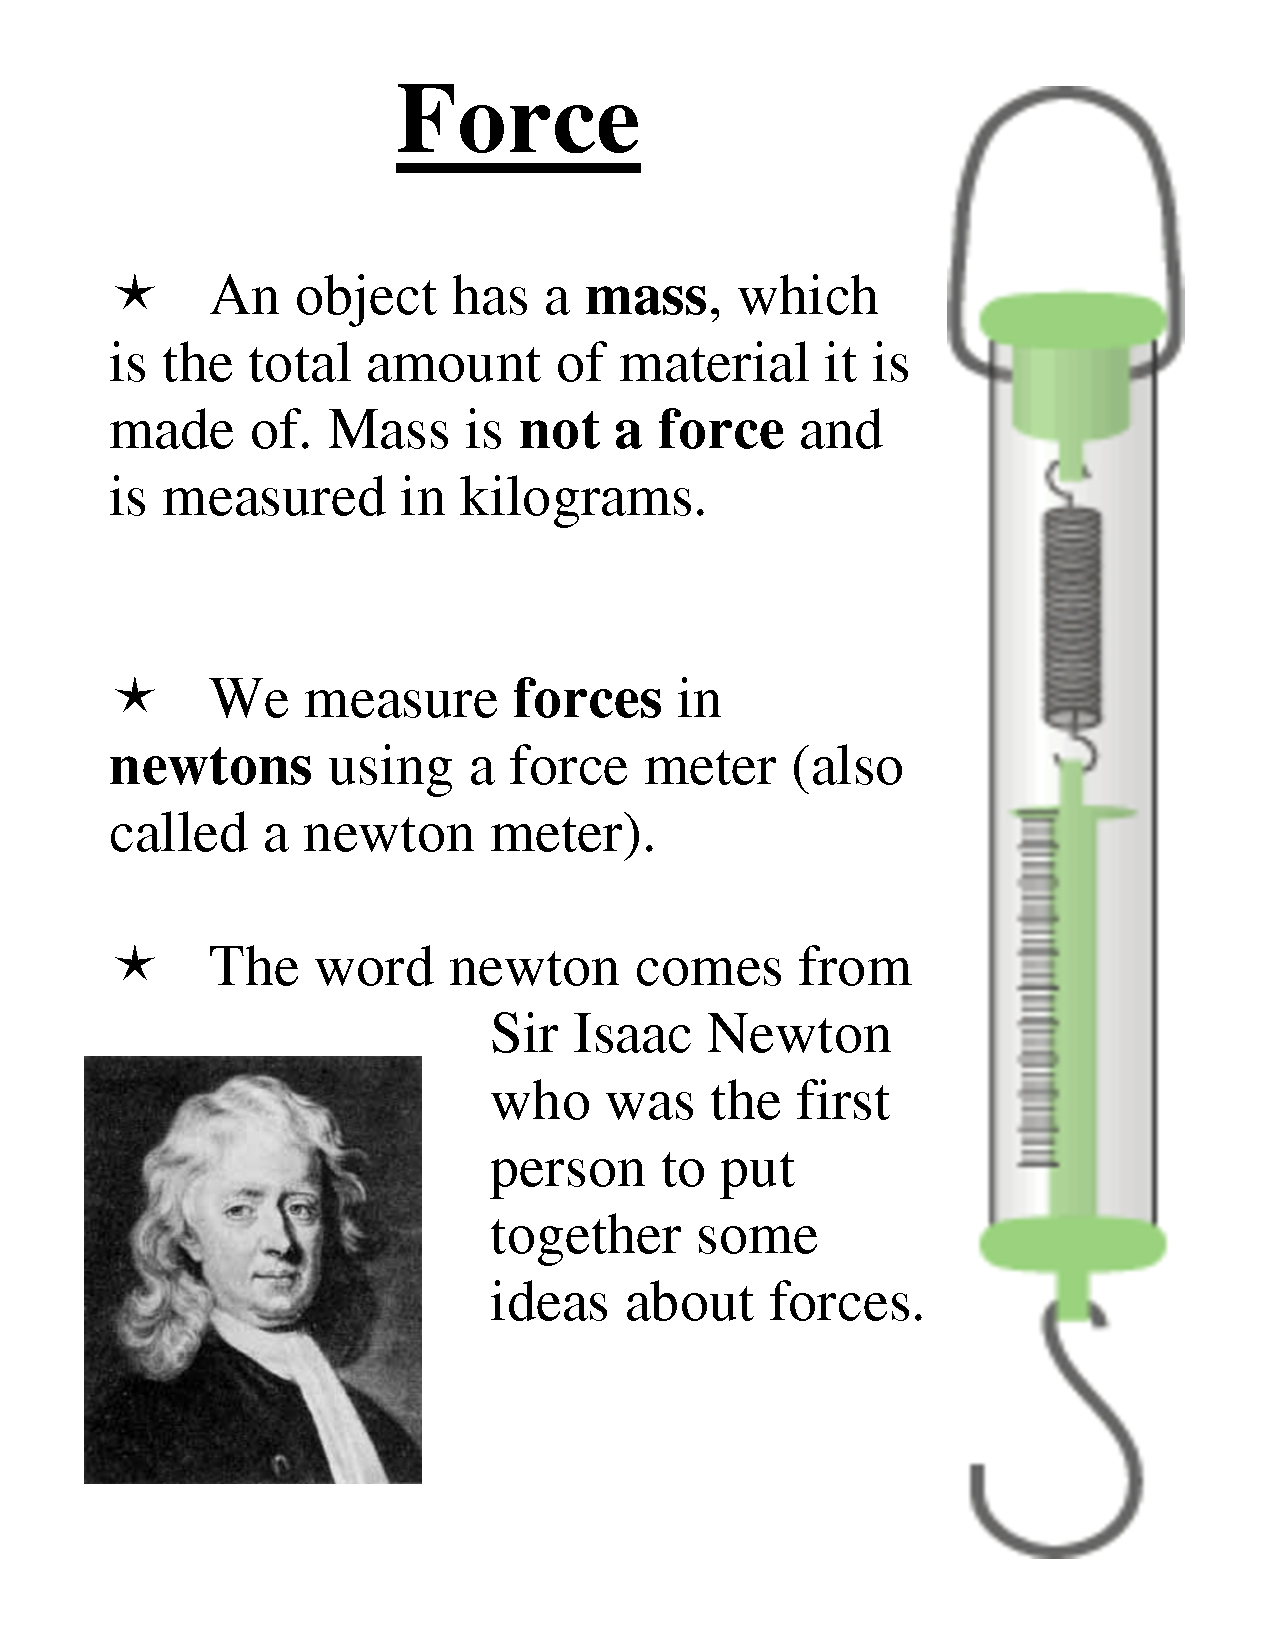 Force Meter Diagram Google Search Physics Pinterest Mousetrap Catapult College Of Arts And Sciences Quantum Mechanics Physical Science Earth Teaching